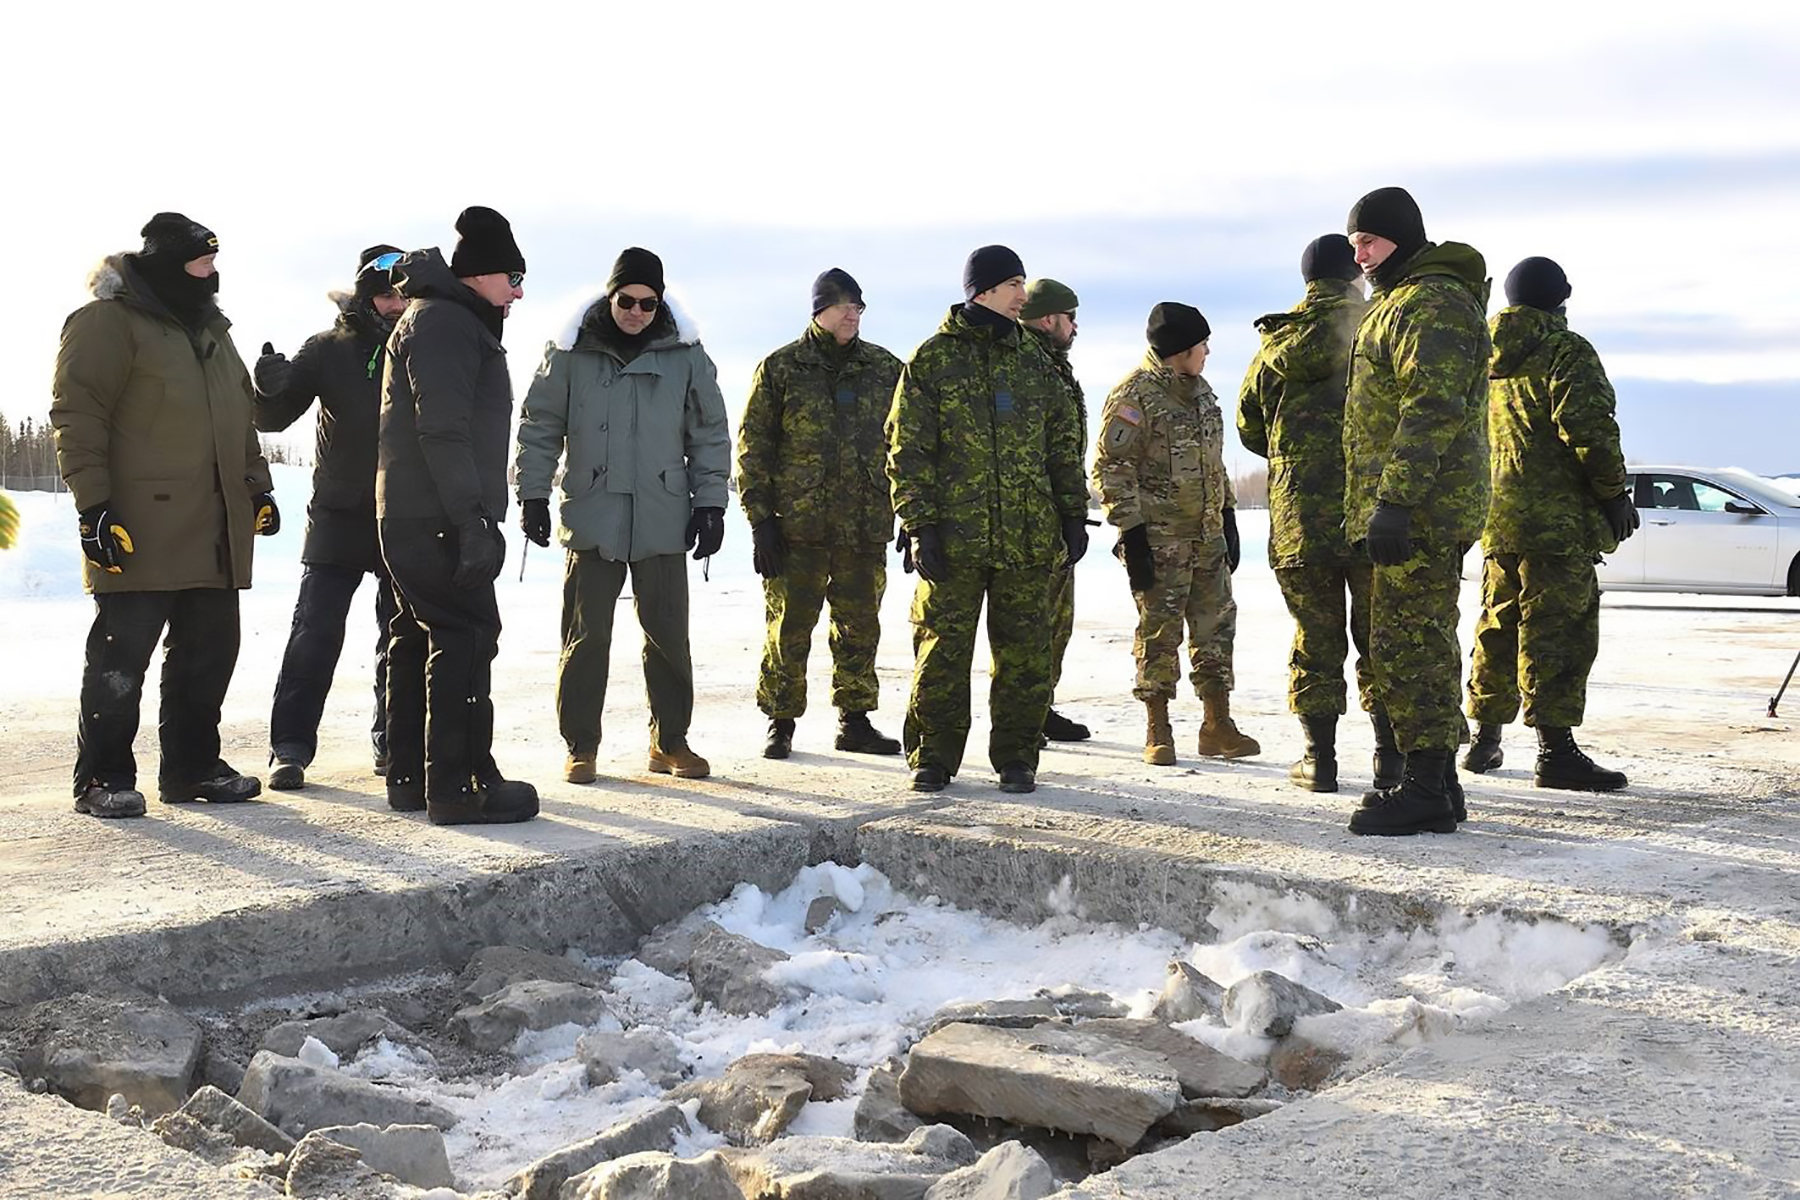 Members of the Arctic Air Power Seminar, (3rd edition), visit the Cold Rapid Airfield Damage Repair test and evaluation at 5 Wing Goose Bay, Newfoundland and Labrador on January 22, 2020. PHOTO: Submitted